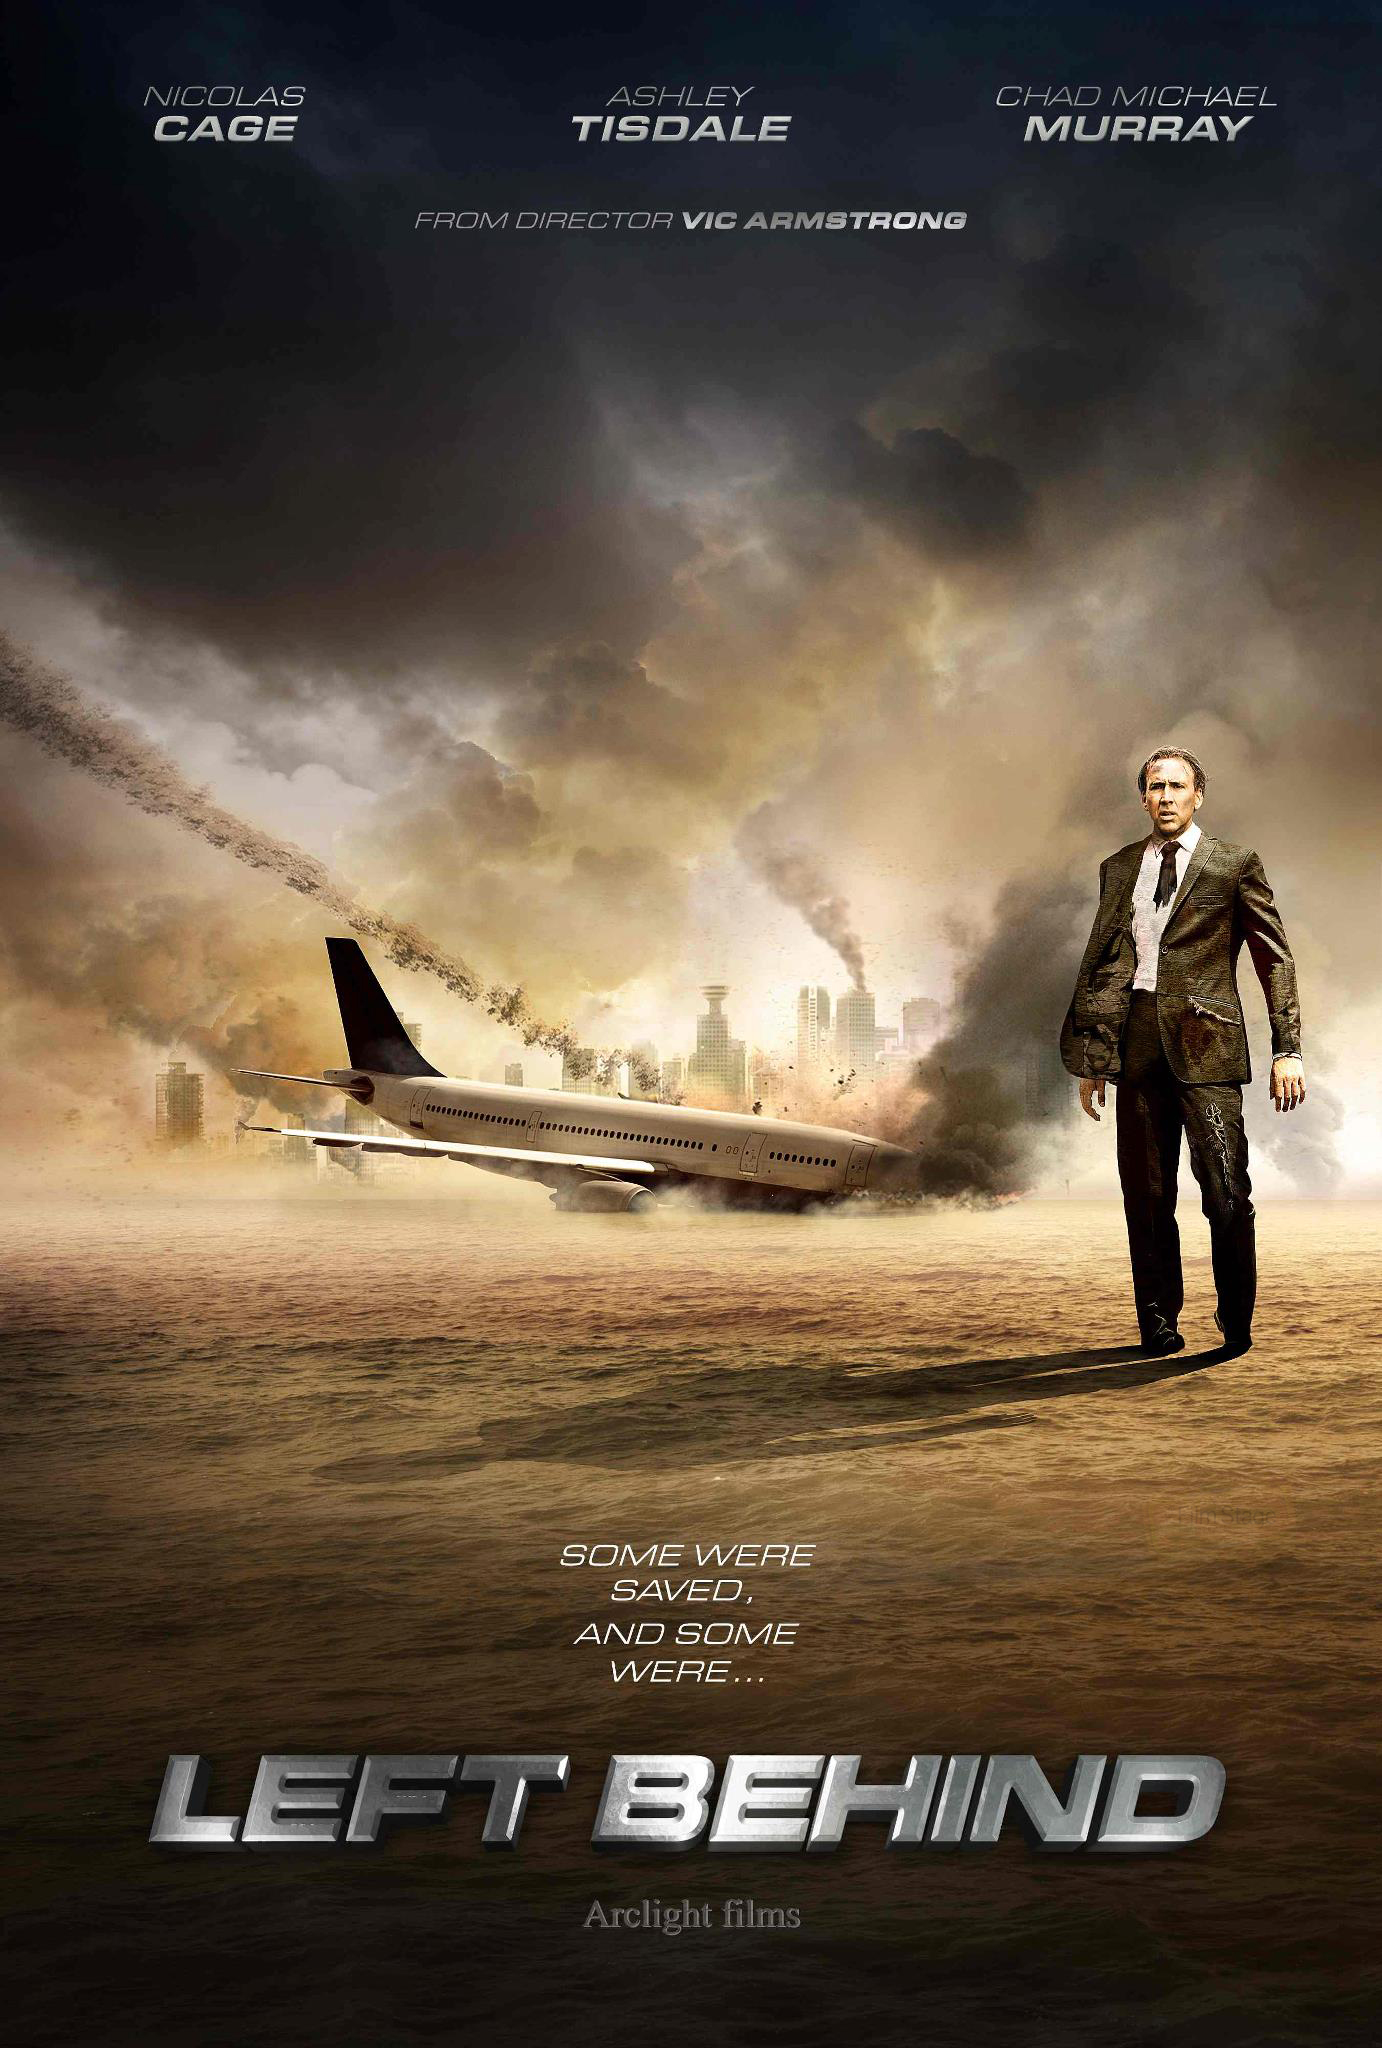 Nicolas Cage Gets His Own 'Taken' With 'Tokarev'; First Poster